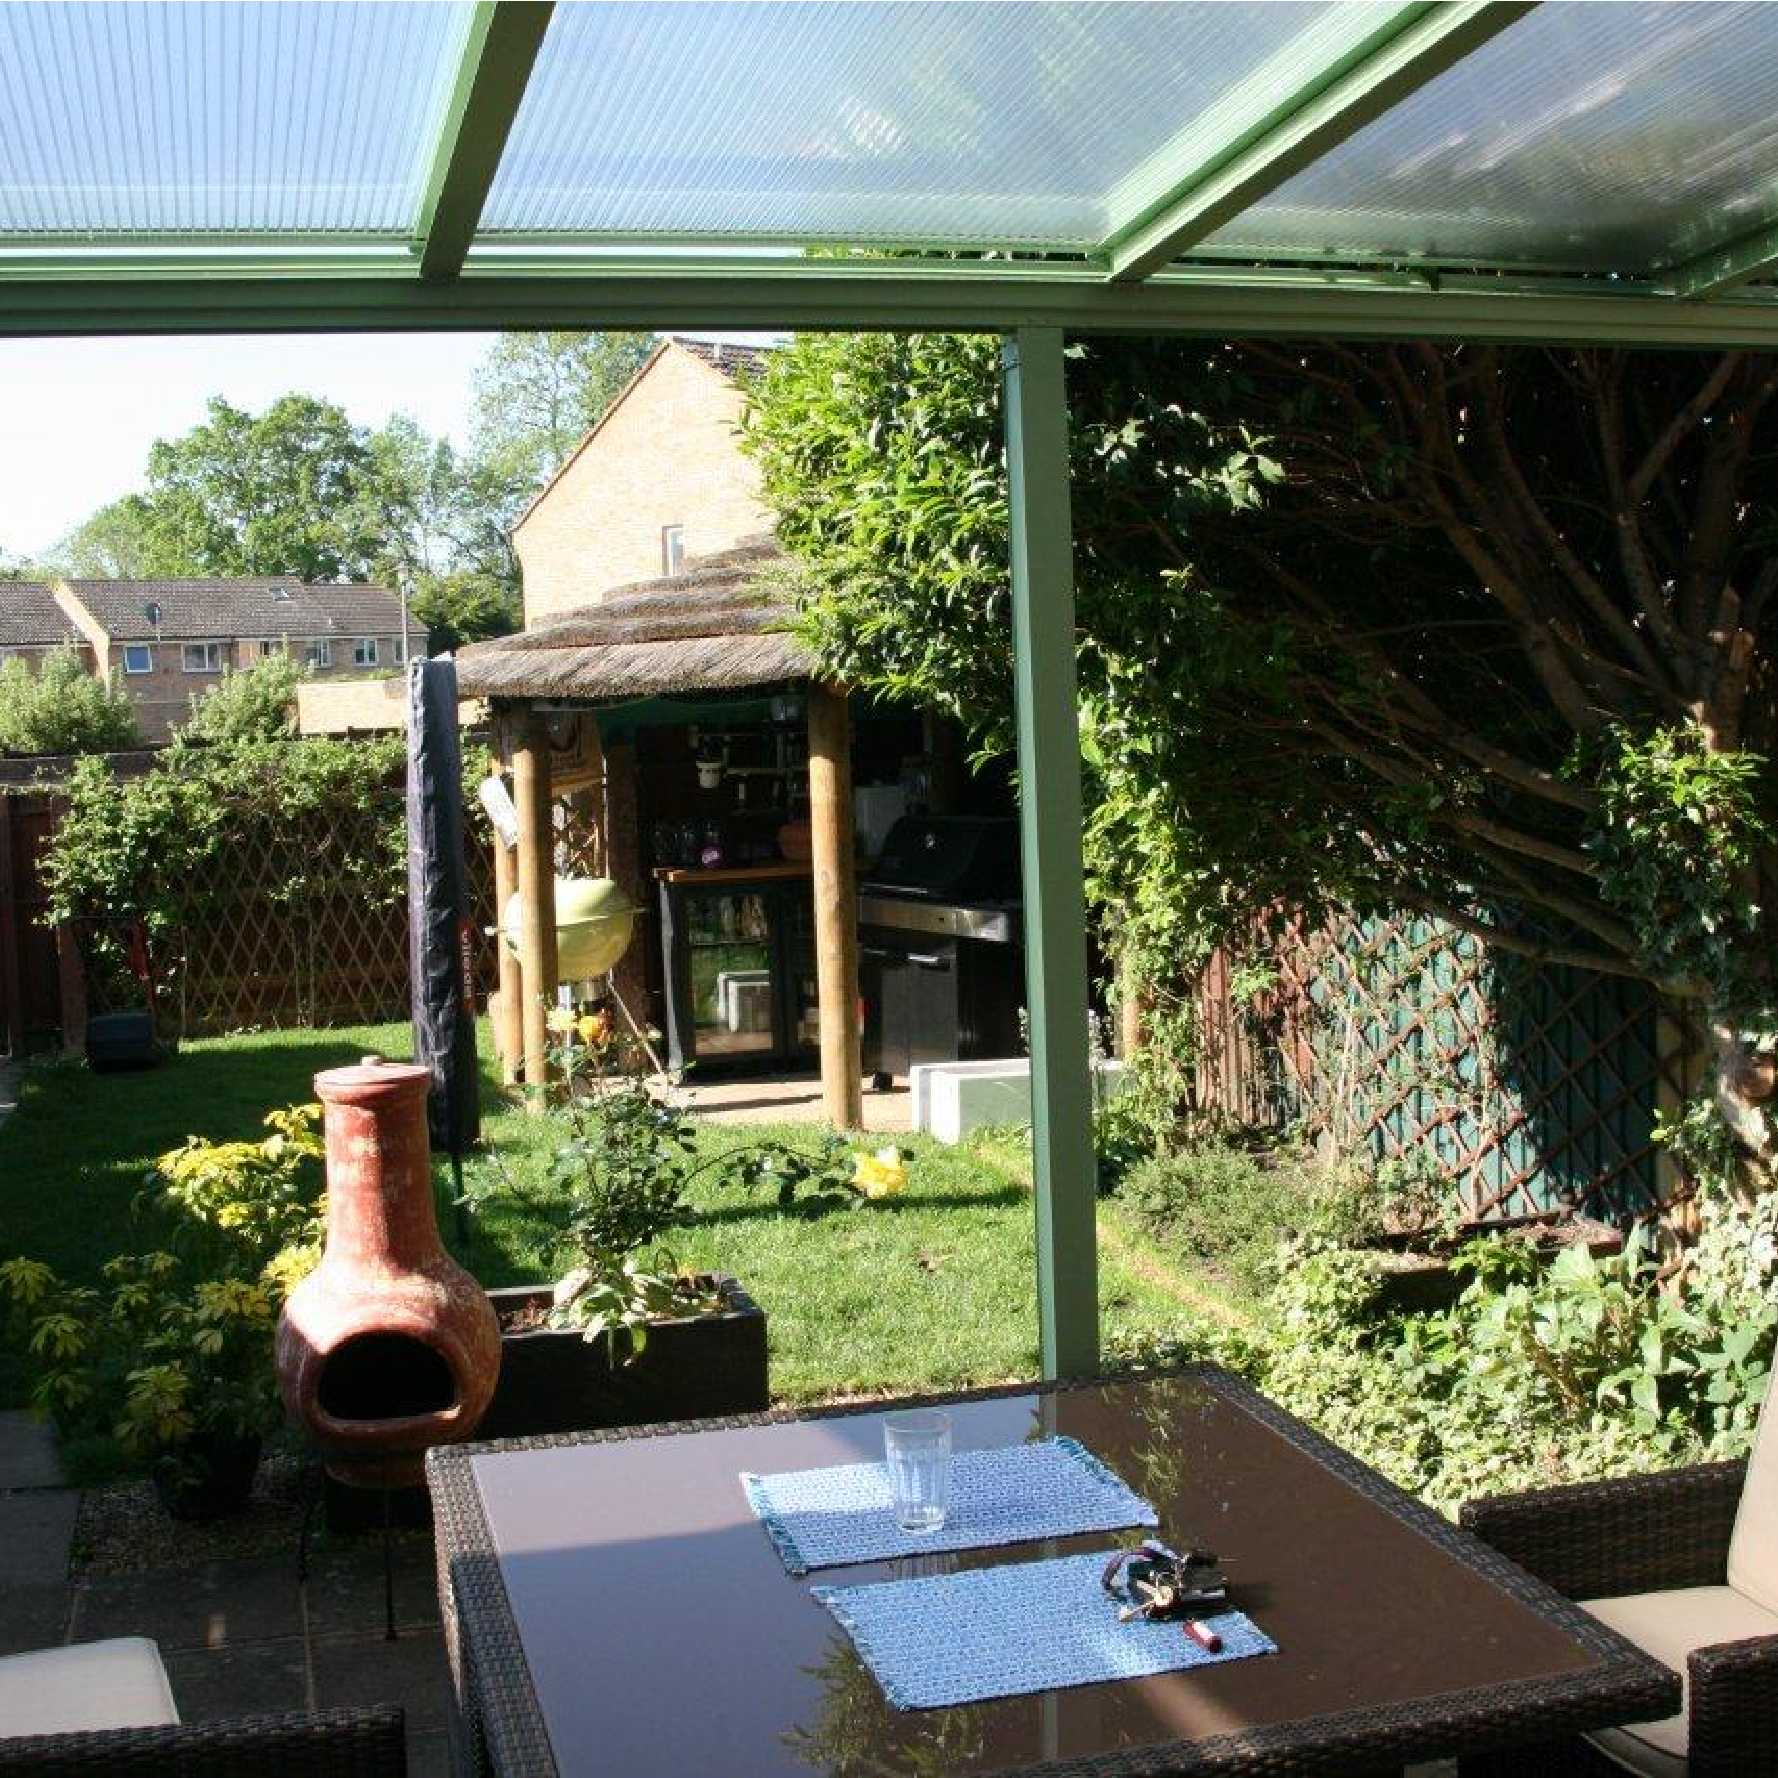 Affordable Omega Smart White Lean-To Canopy with 16mm Polycarbonate Glazing - 2.1m (W) x 1.5m (P), (2) Supporting Posts